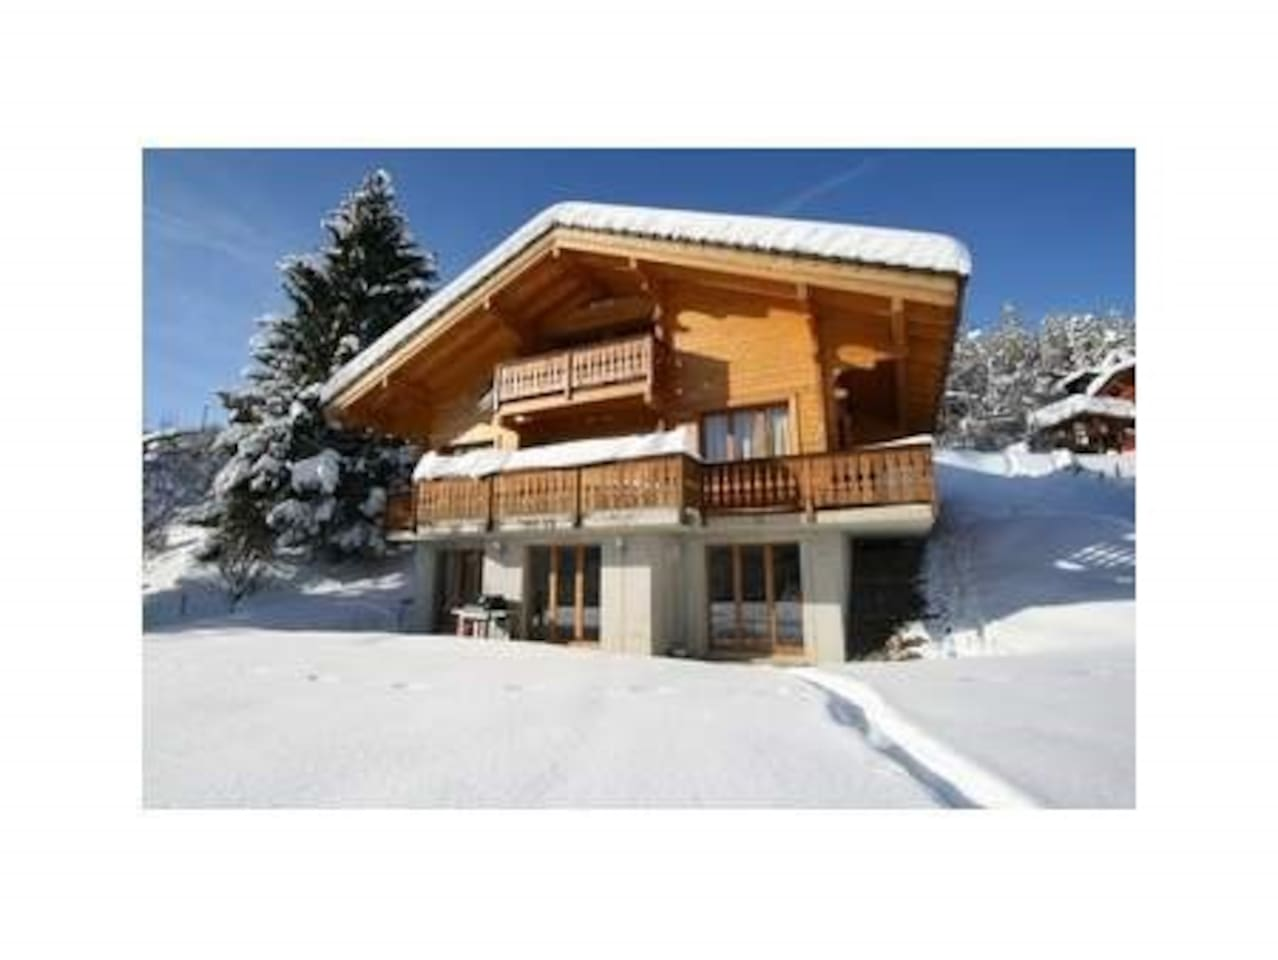 Chalet Rose Blanche - 2 bedroom + 2 bathrooms, kitchen, dining/sitting room (ground floor apartment)